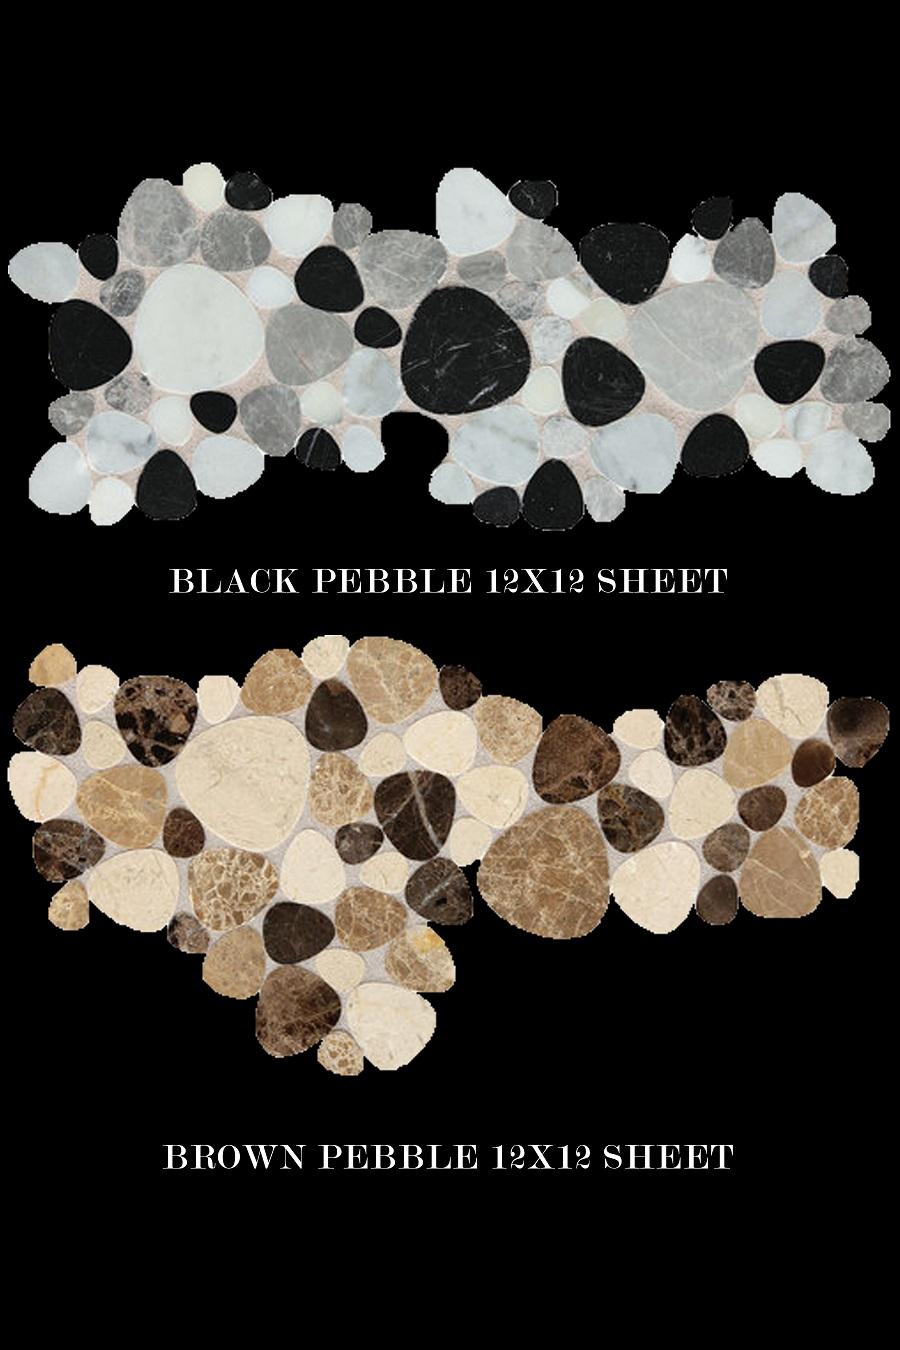 Daltile Fashion accents black pebble flat polished brown pebble grey noce gris mosaic sheet random natural stone